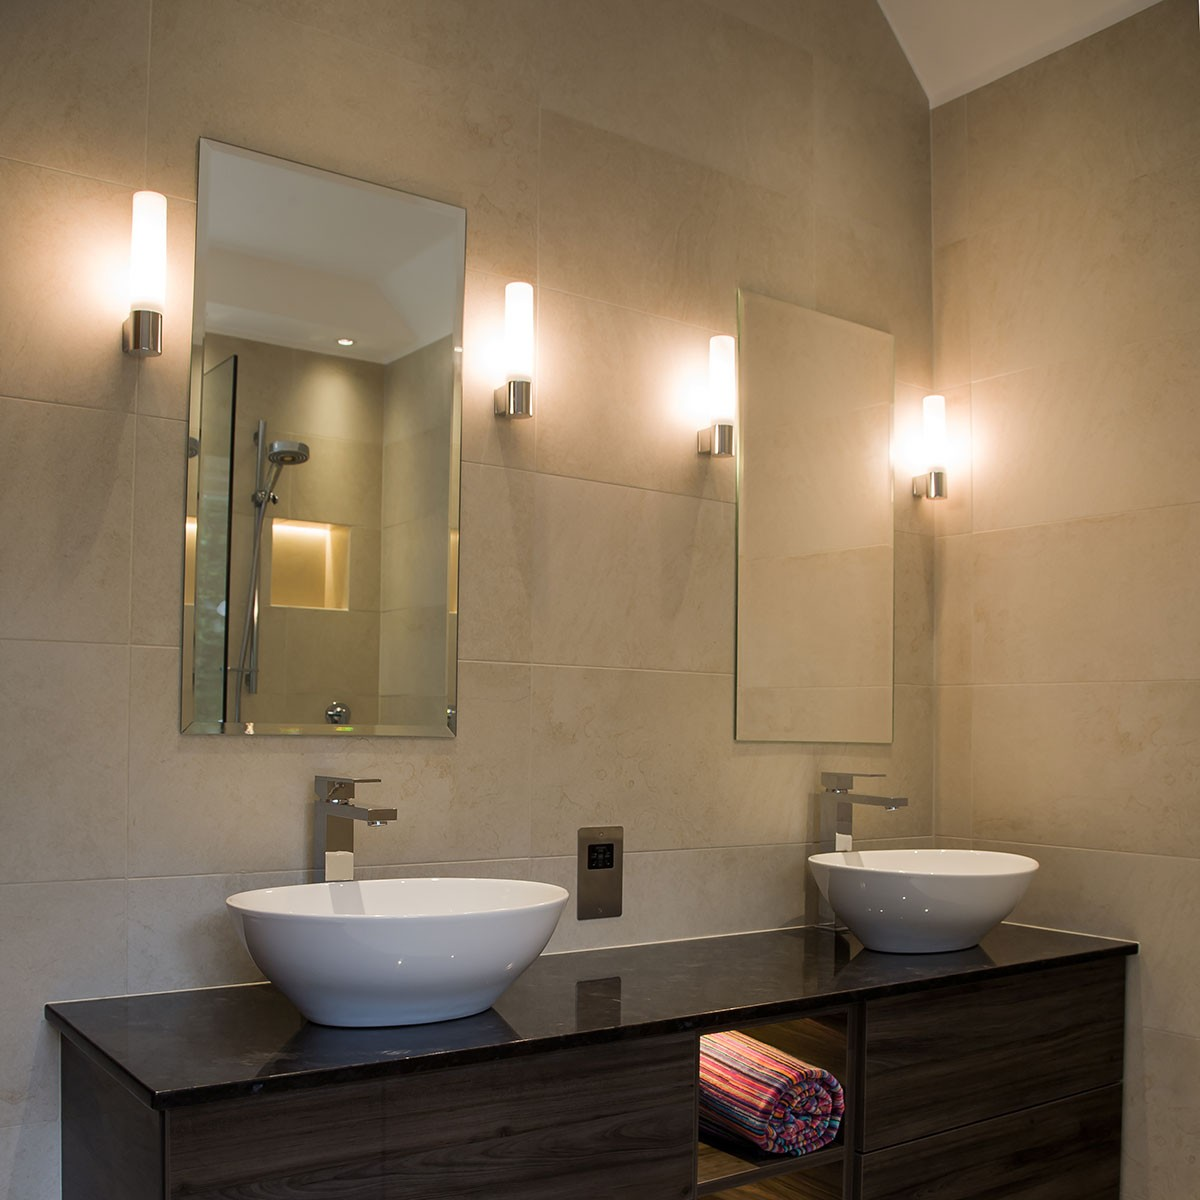 Astro bari polished chrome bathroom wall light at uk for Bathroom wall lights